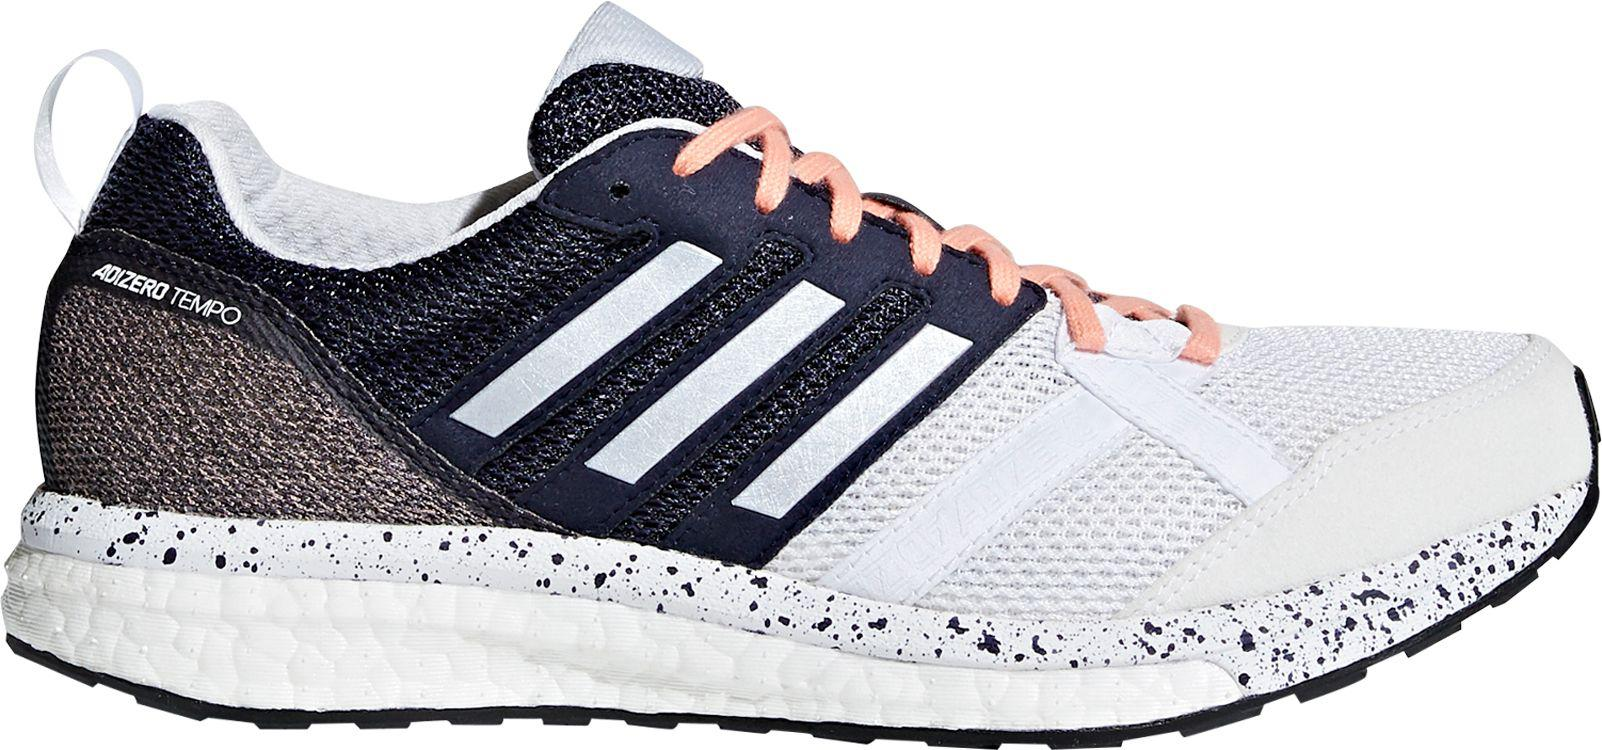 save off 9f773 6330a Lyst - adidas Adizero Tempo 8 Running Shoes in Blue